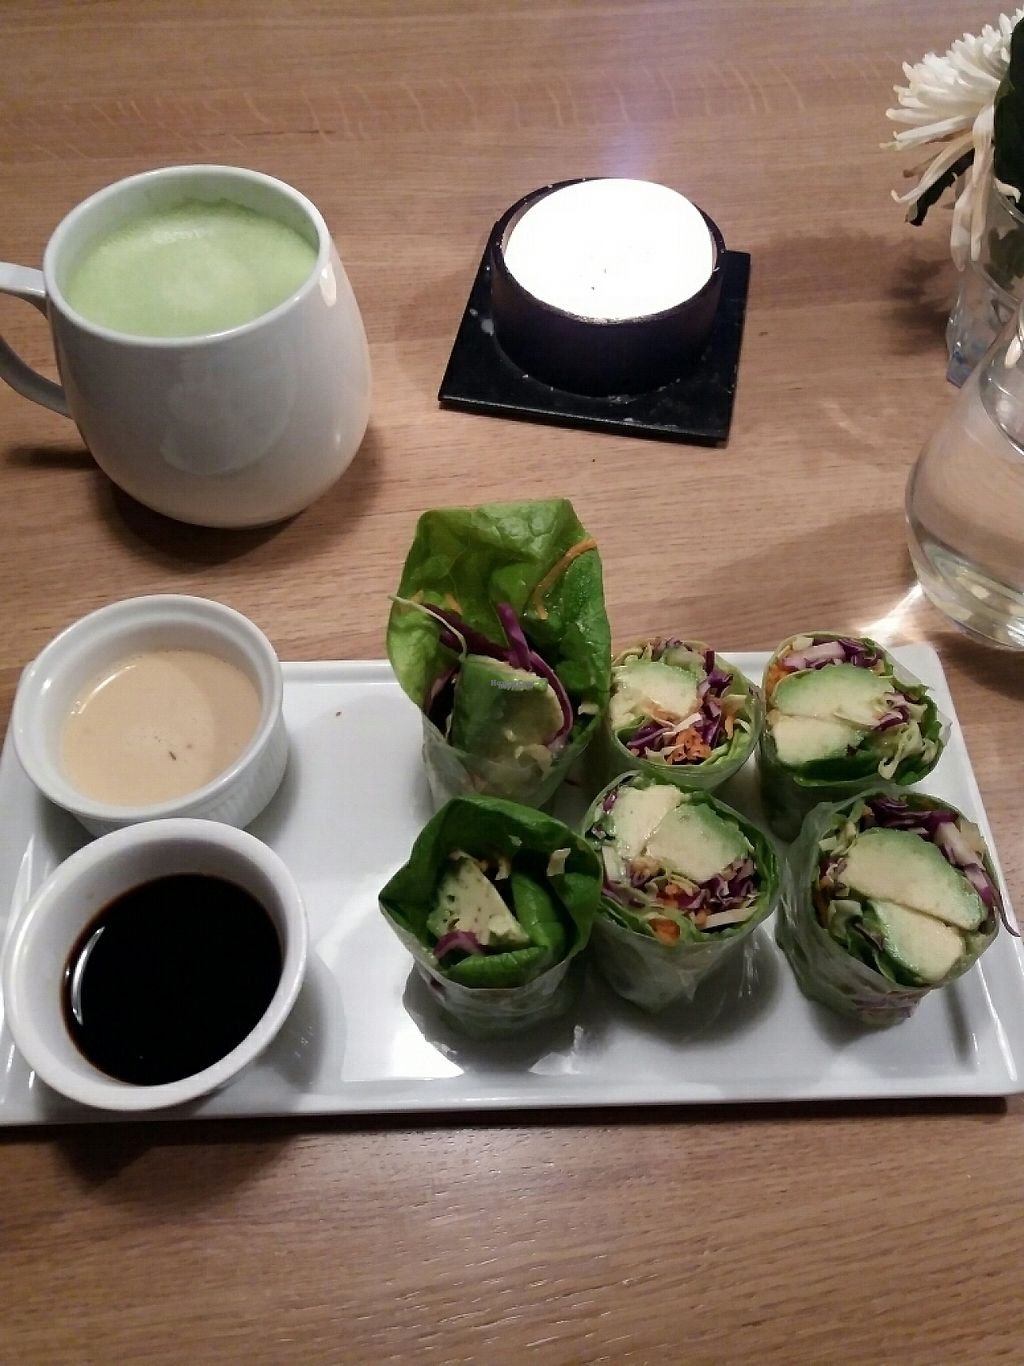 """Photo of simpleRAW  by <a href=""""/members/profile/Smoelfine"""">Smoelfine</a> <br/>rice paper rolls <br/> January 11, 2017  - <a href='/contact/abuse/image/59290/210709'>Report</a>"""